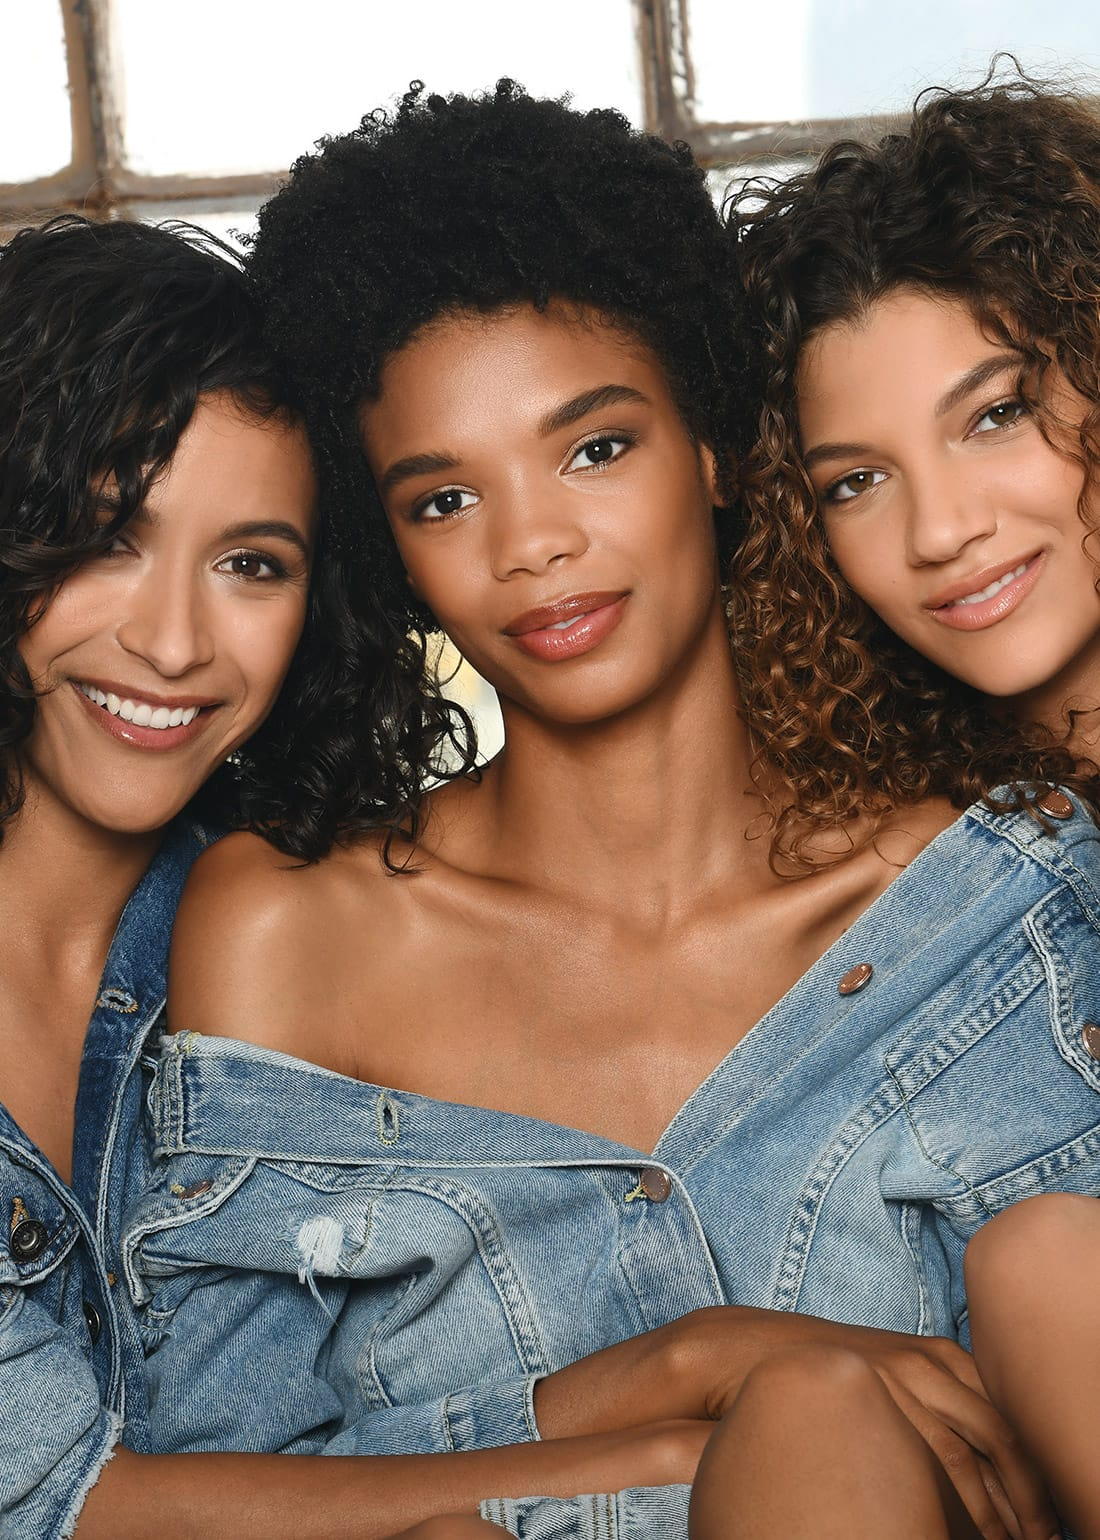 SOTAH Summer 2018 Campaign - Models with Various Hair Types Wearing Denim